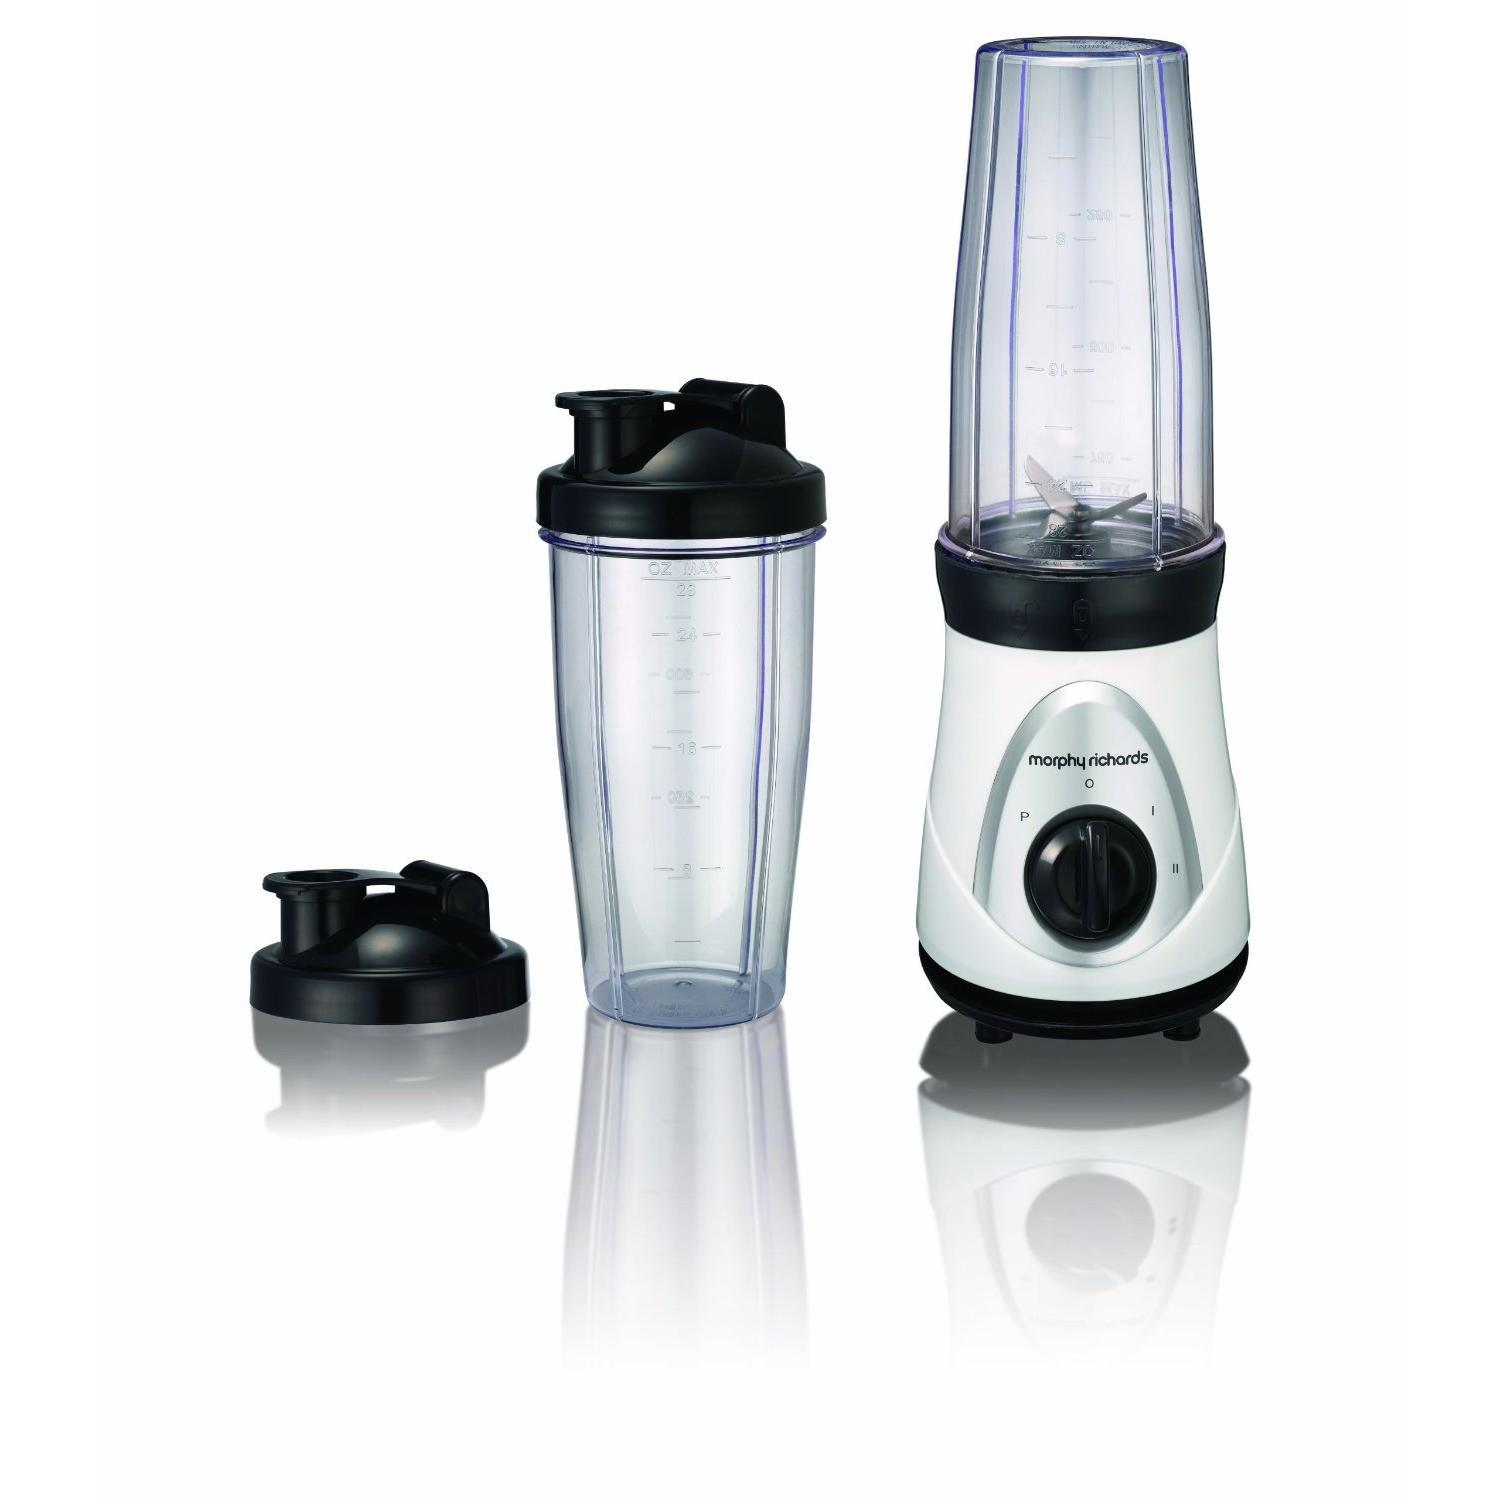 Morphy richards - MR48415 - Blender